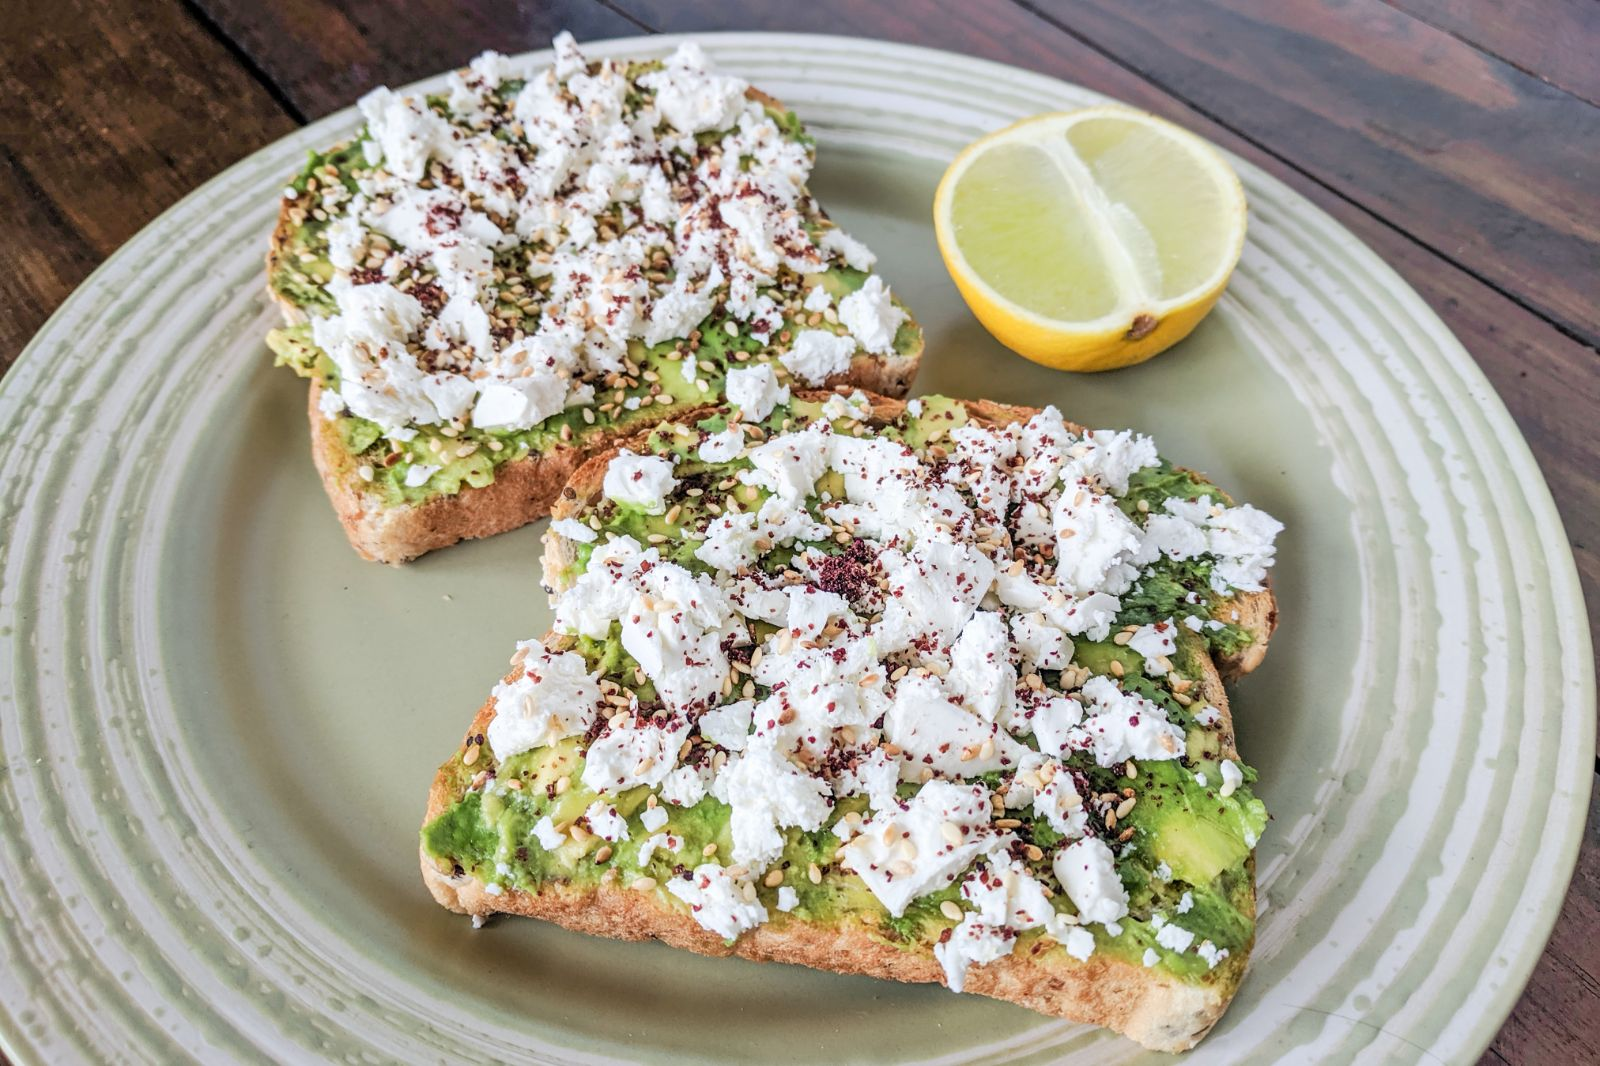 Avocado and feta toast with lime, sumac, and toasted sesame seeds